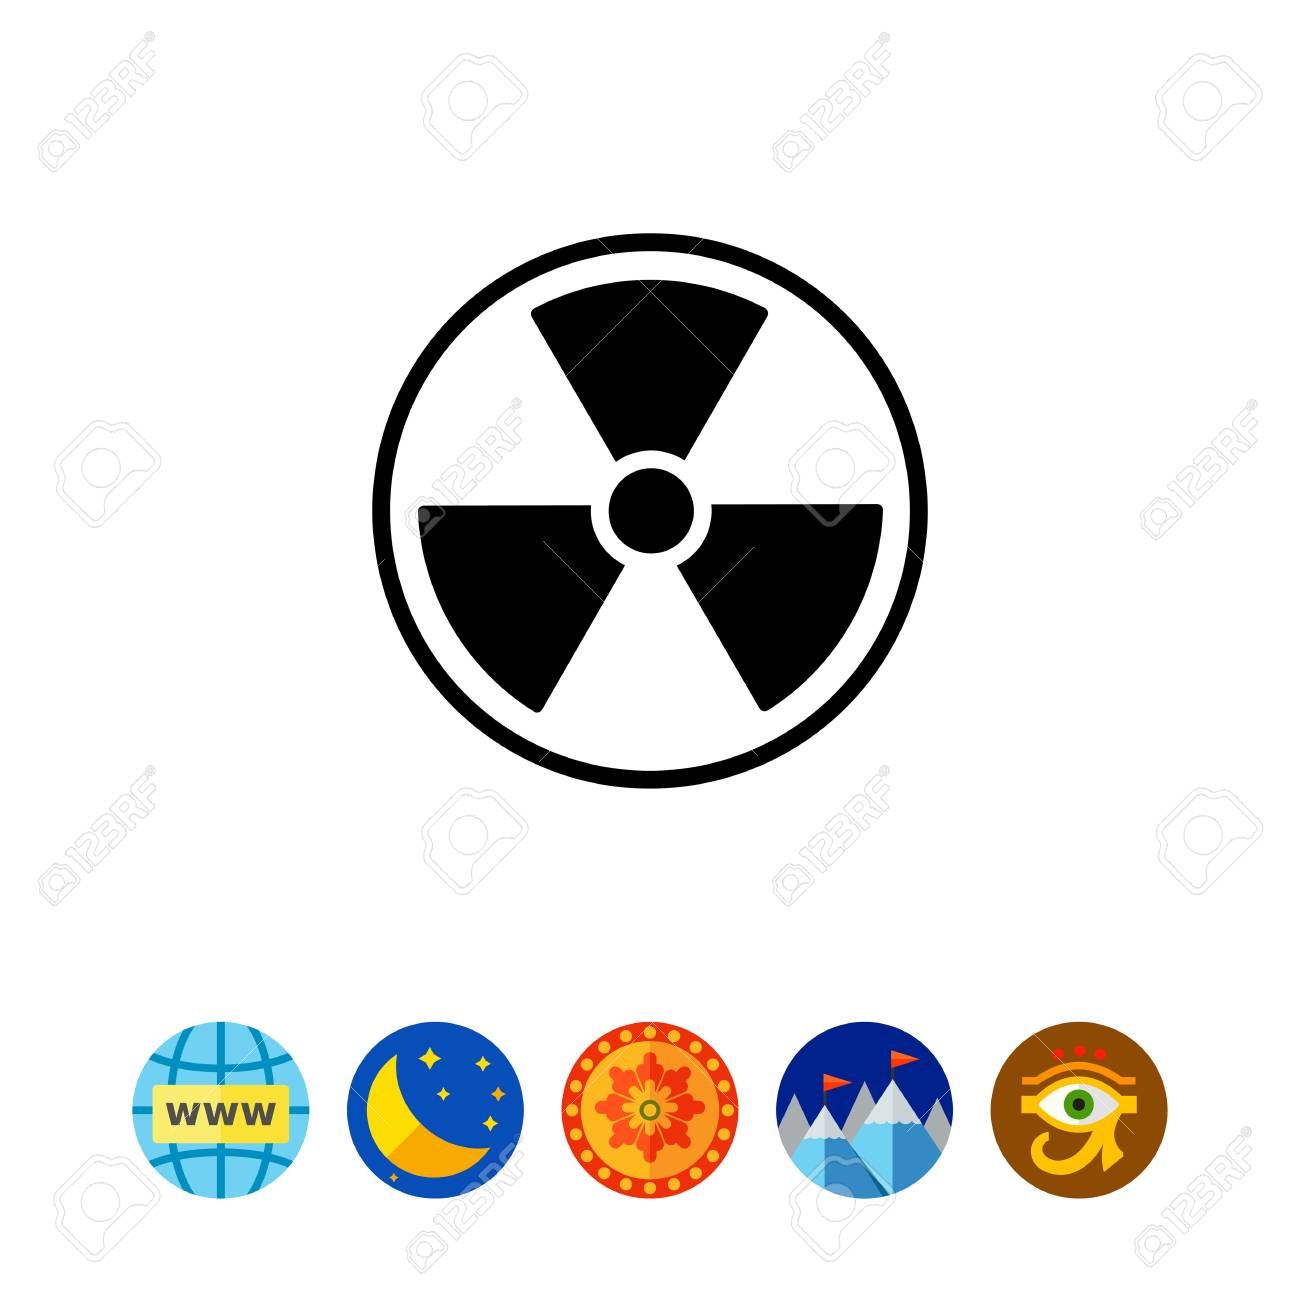 Monochrome vector icon of international radiation hazard symbol monochrome vector icon of international radiation hazard symbol stock vector 80449402 biocorpaavc Image collections